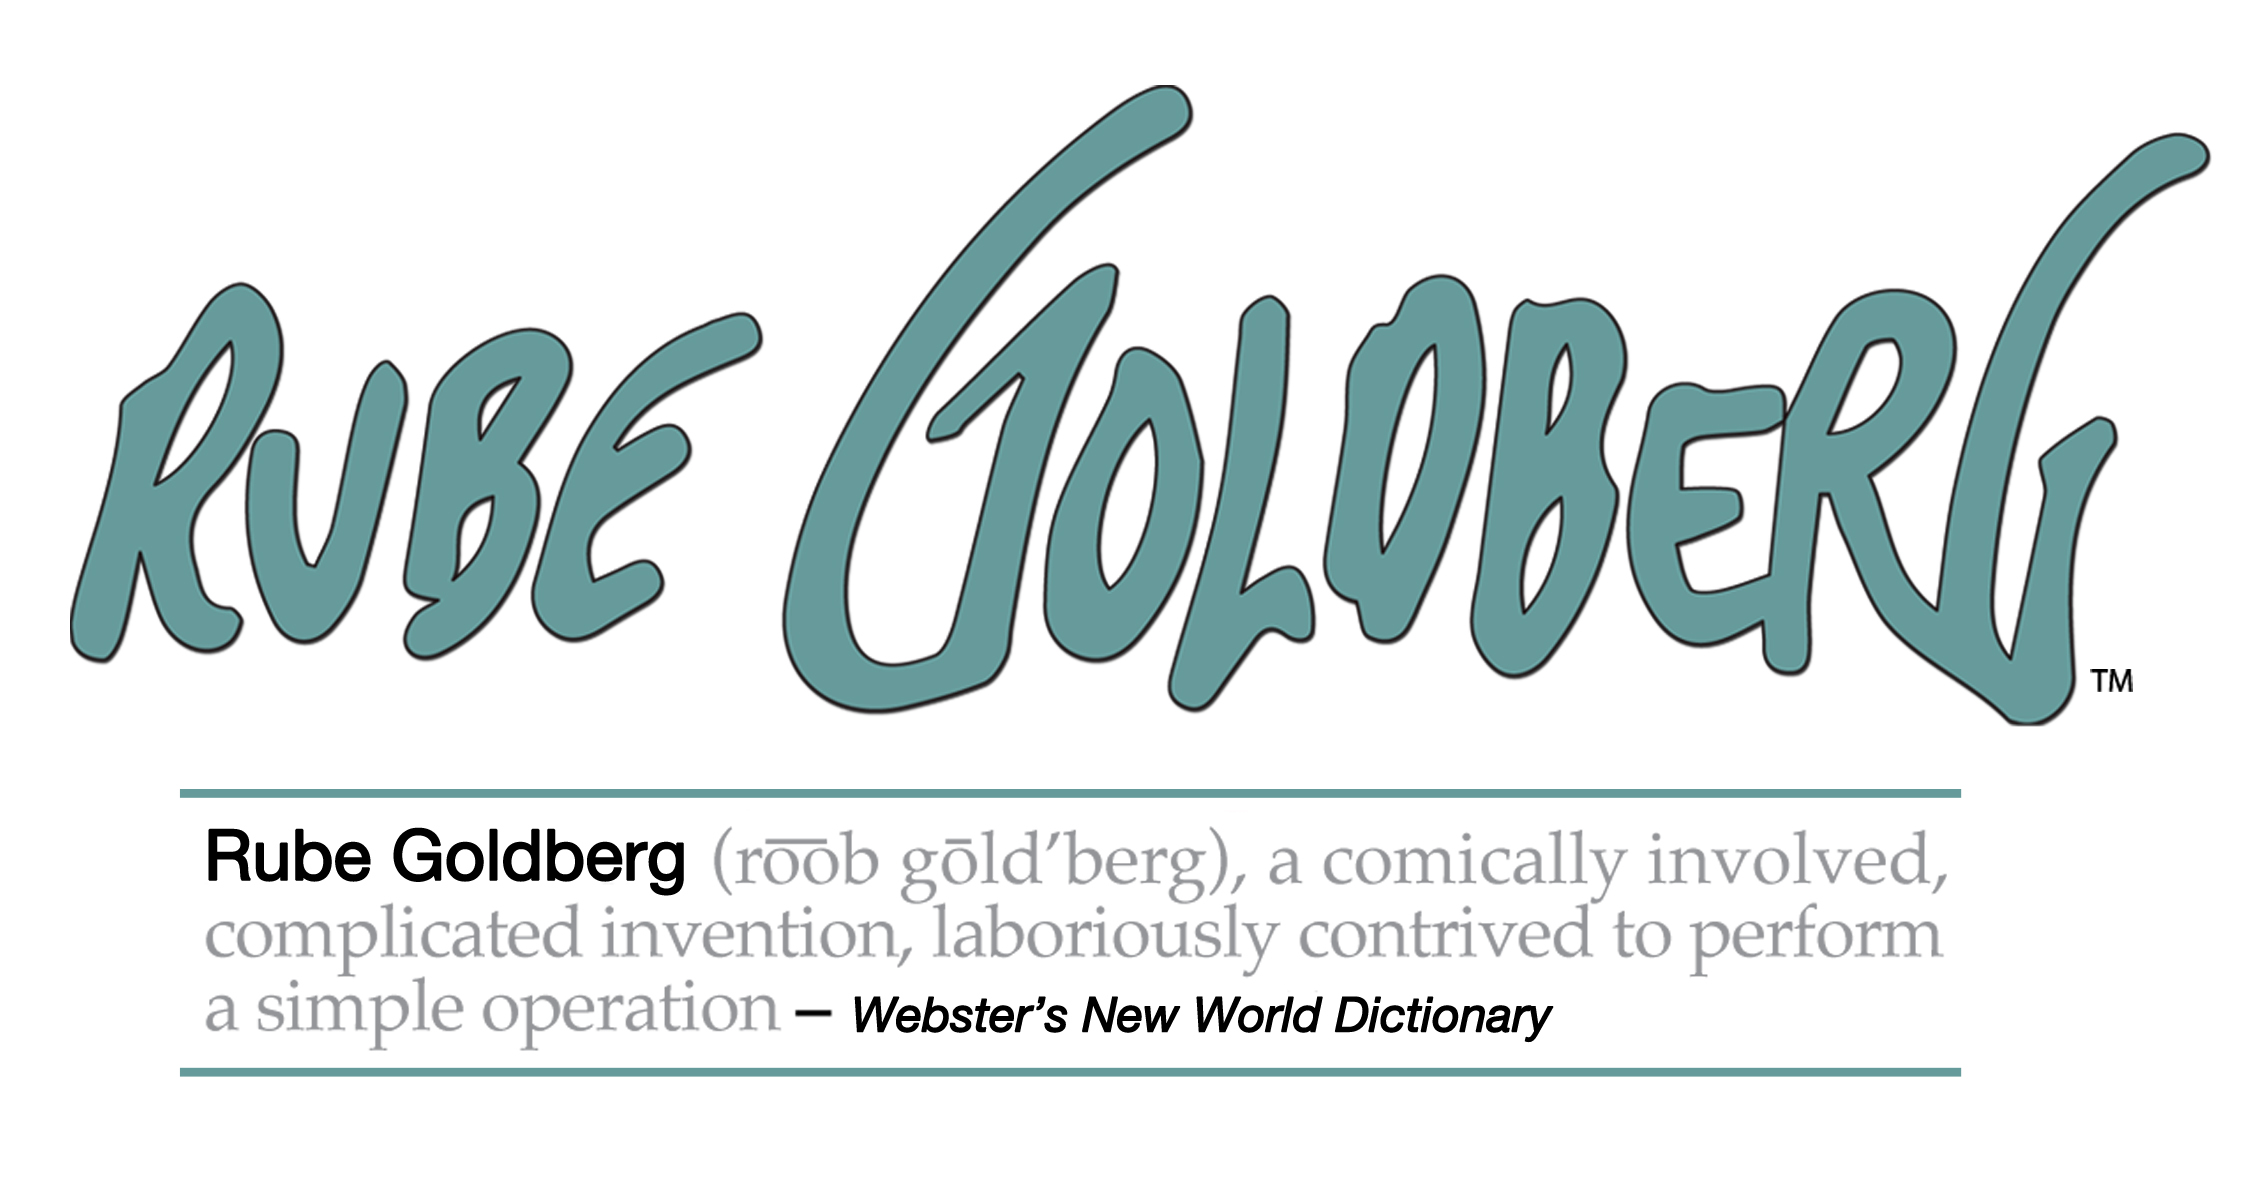 Rub goldberg logo and definition